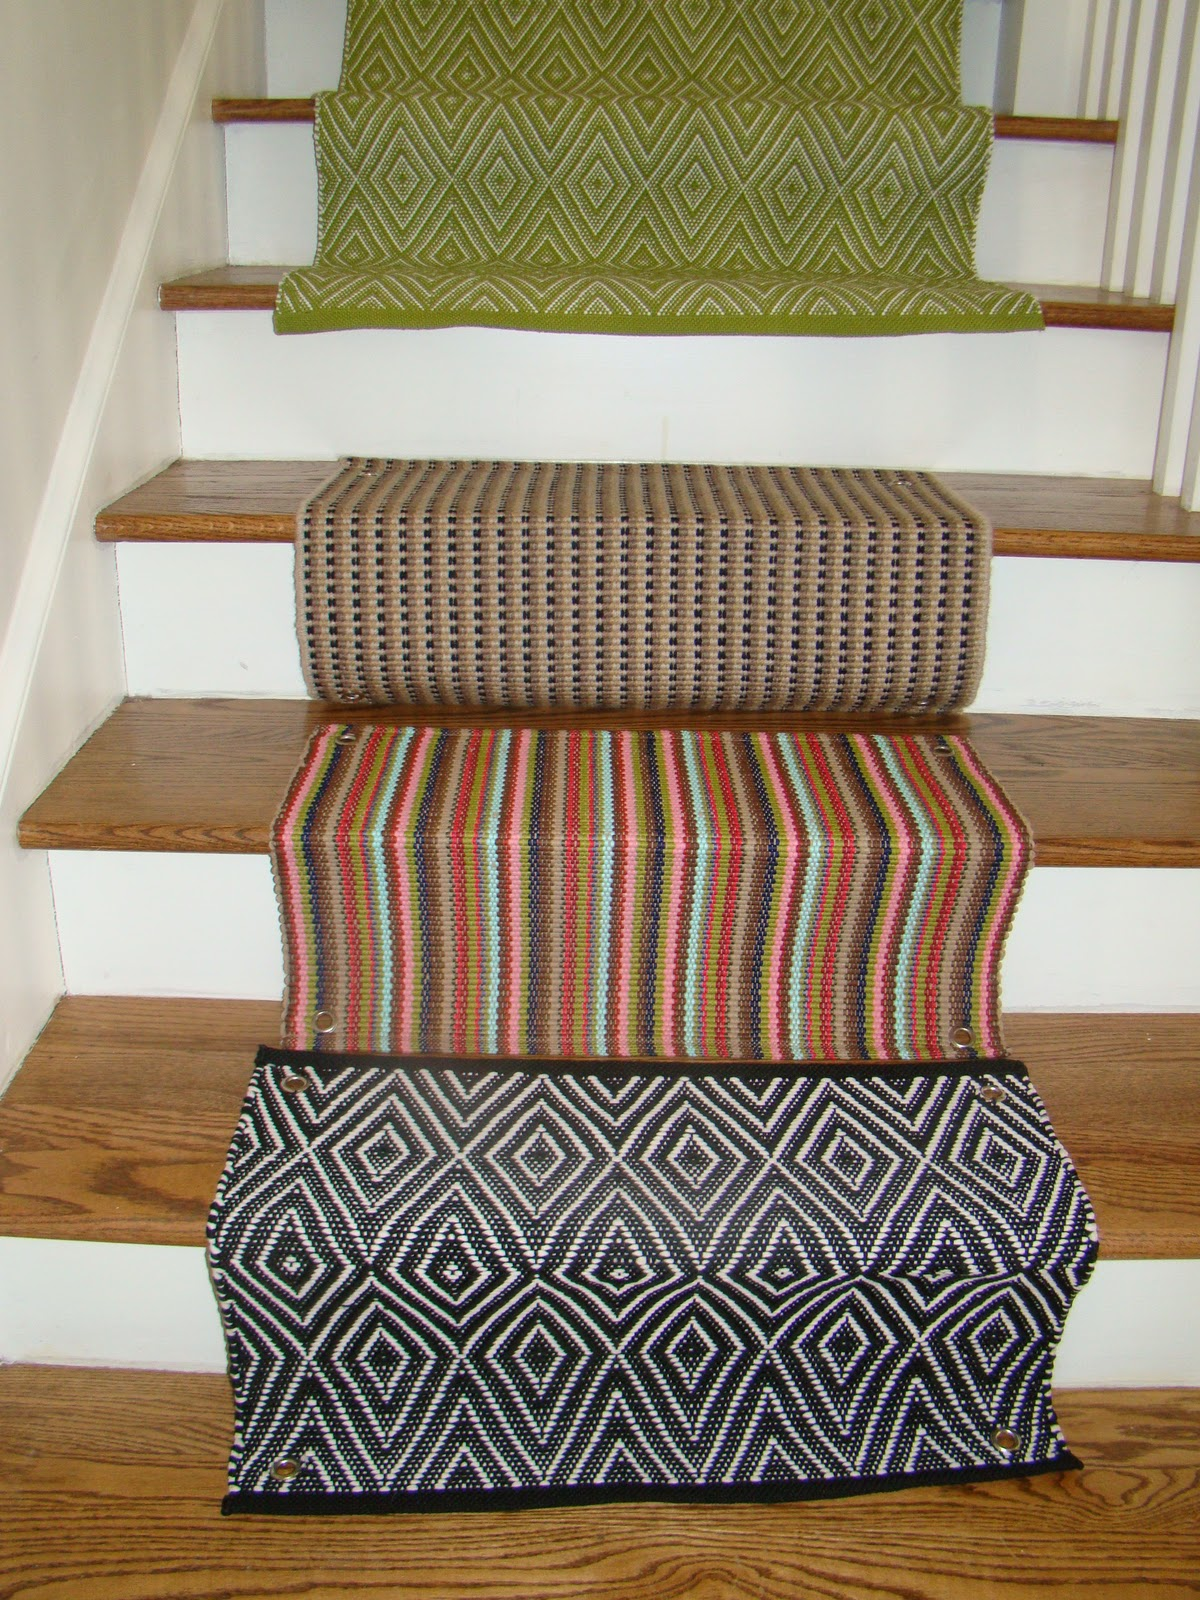 Alluring dash and albert runner at home stairways combinet with laminate floor stairs